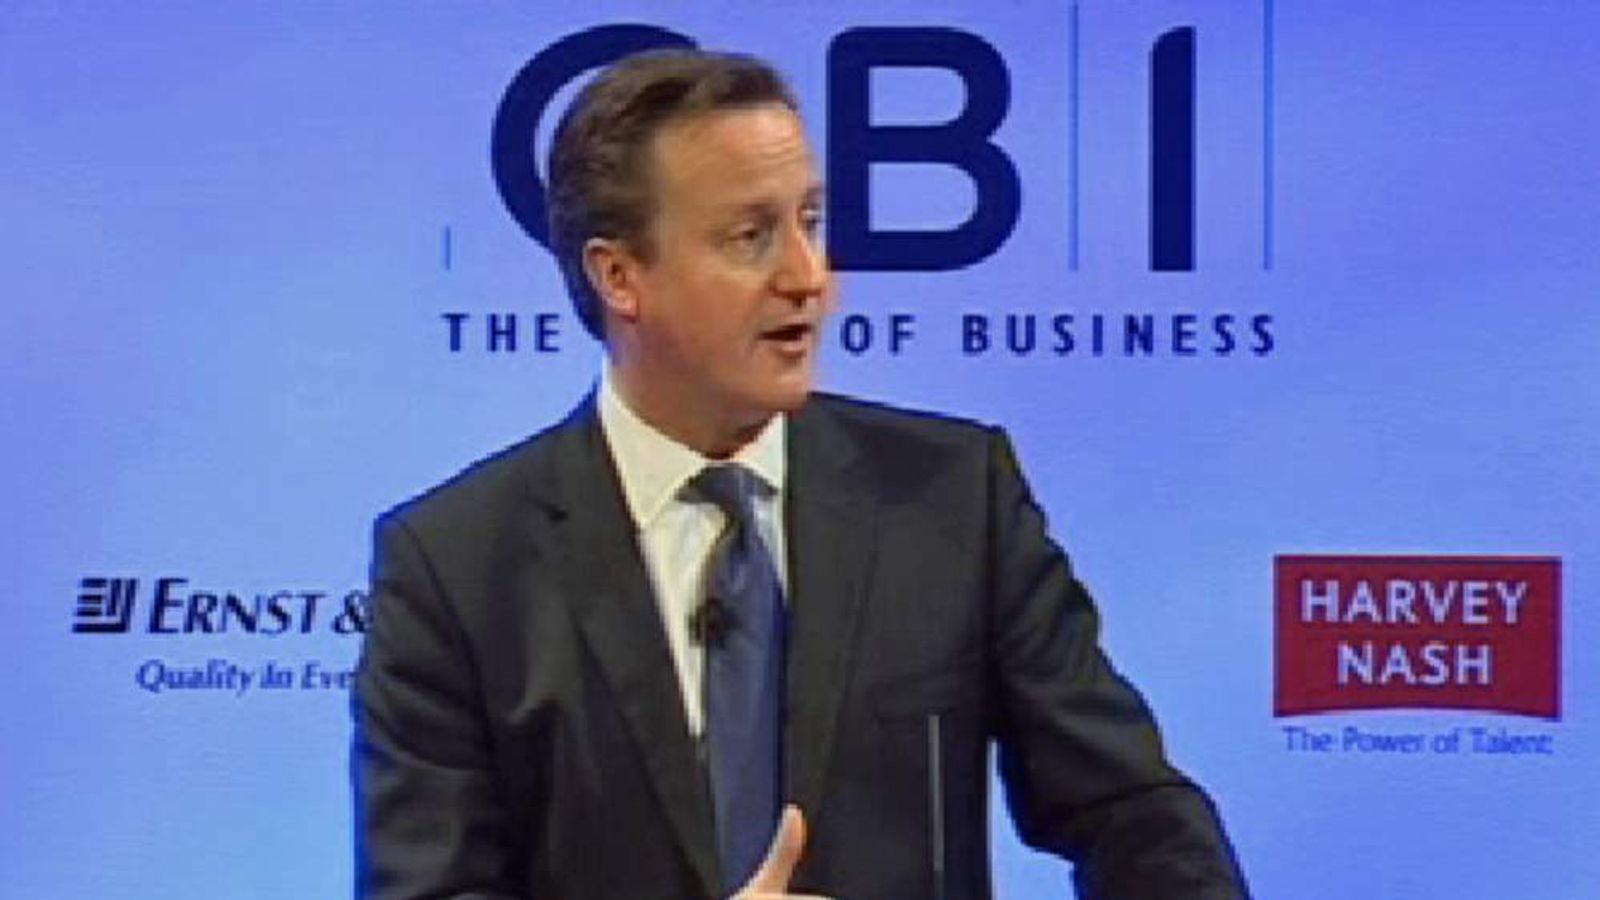 Prime Minister David Cameron speaking at the CBI conference